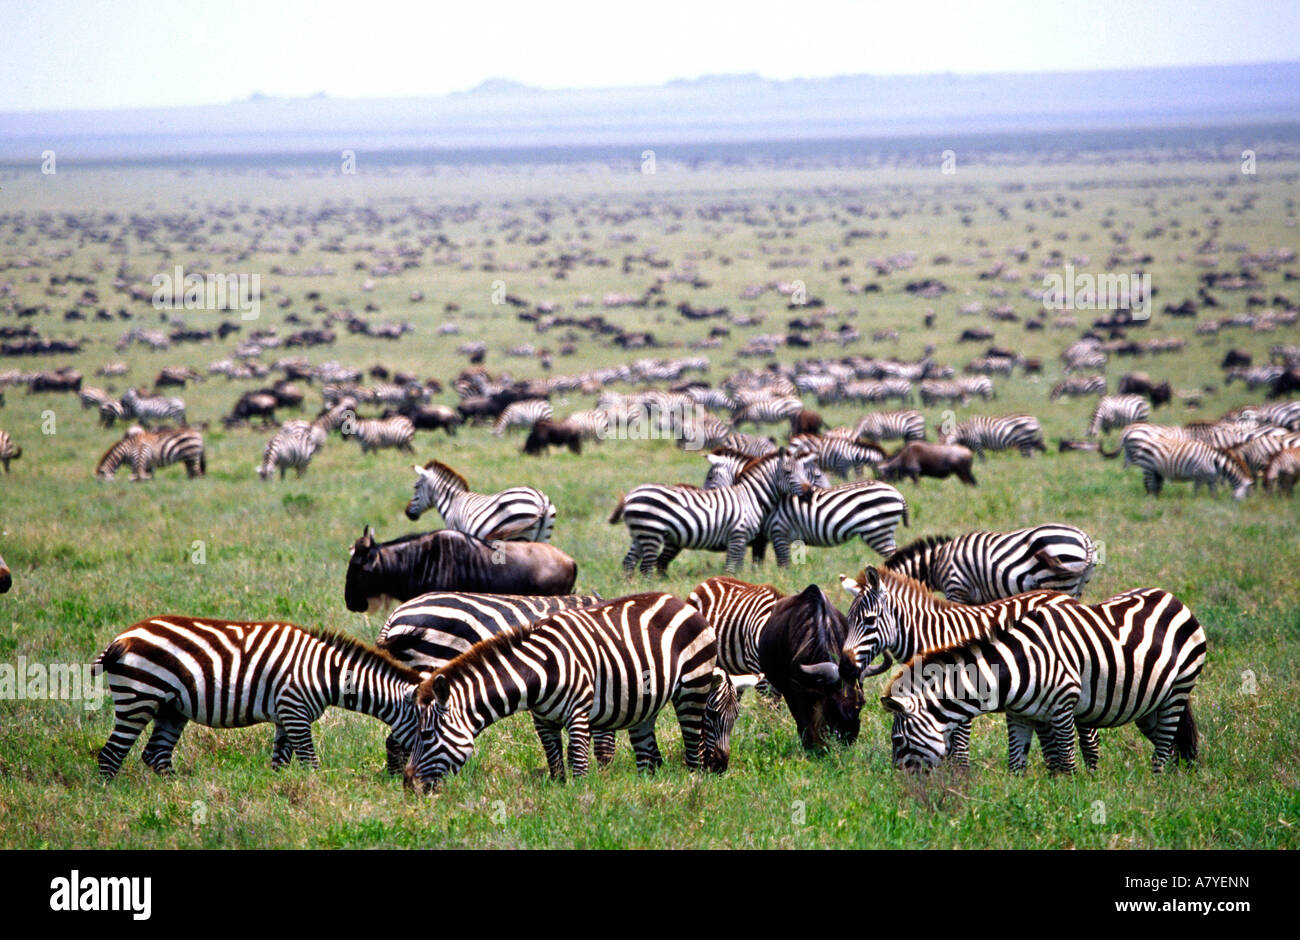 Serengetti Plains full of herds of Zebras and Wildebeast, Tanzania Africa - Stock Image